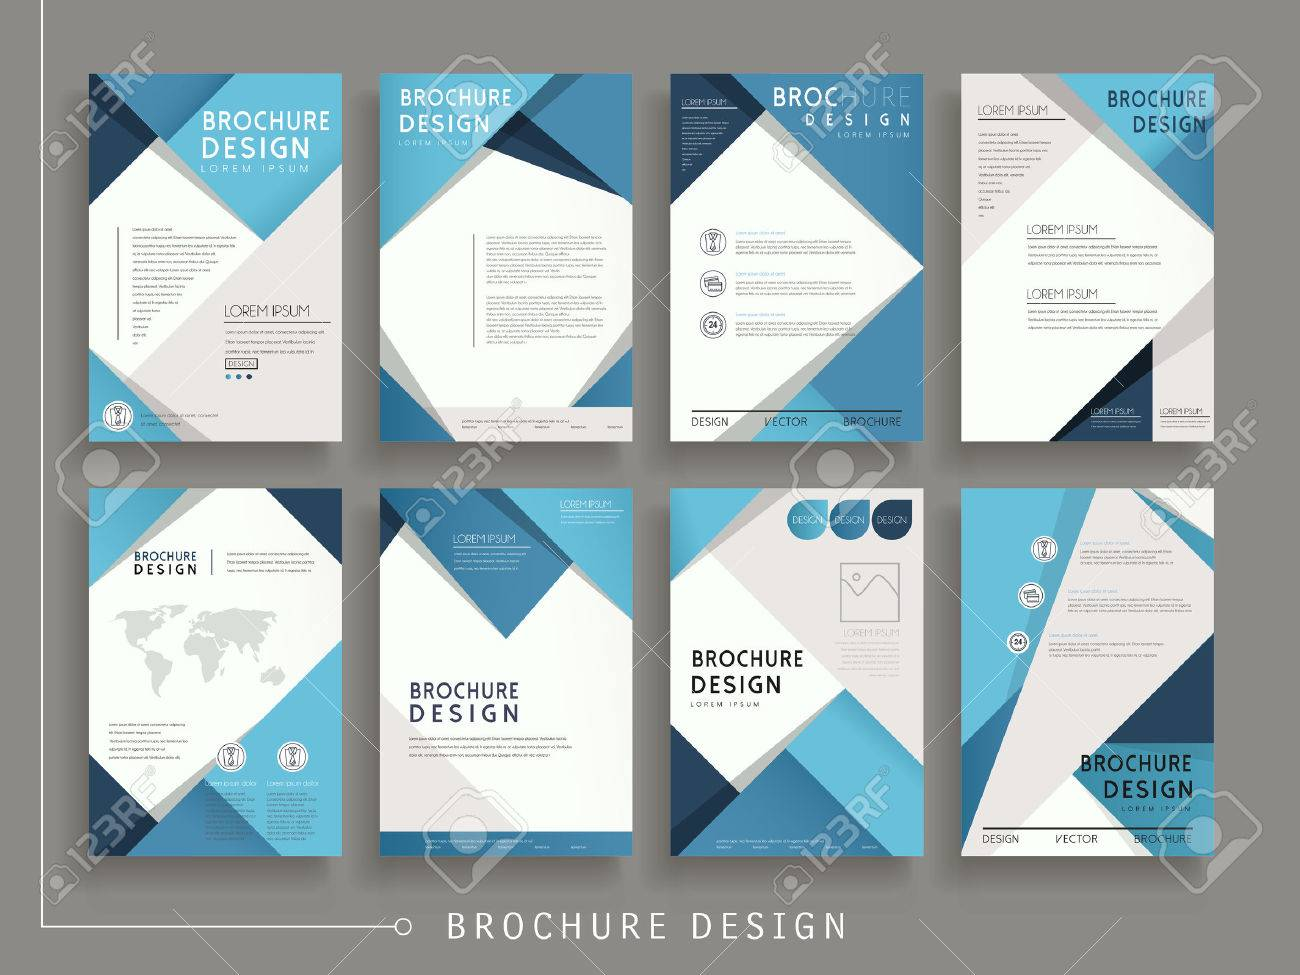 Modern Brochure Design | Modern Brochure Template Design Set With Geometric Elements In